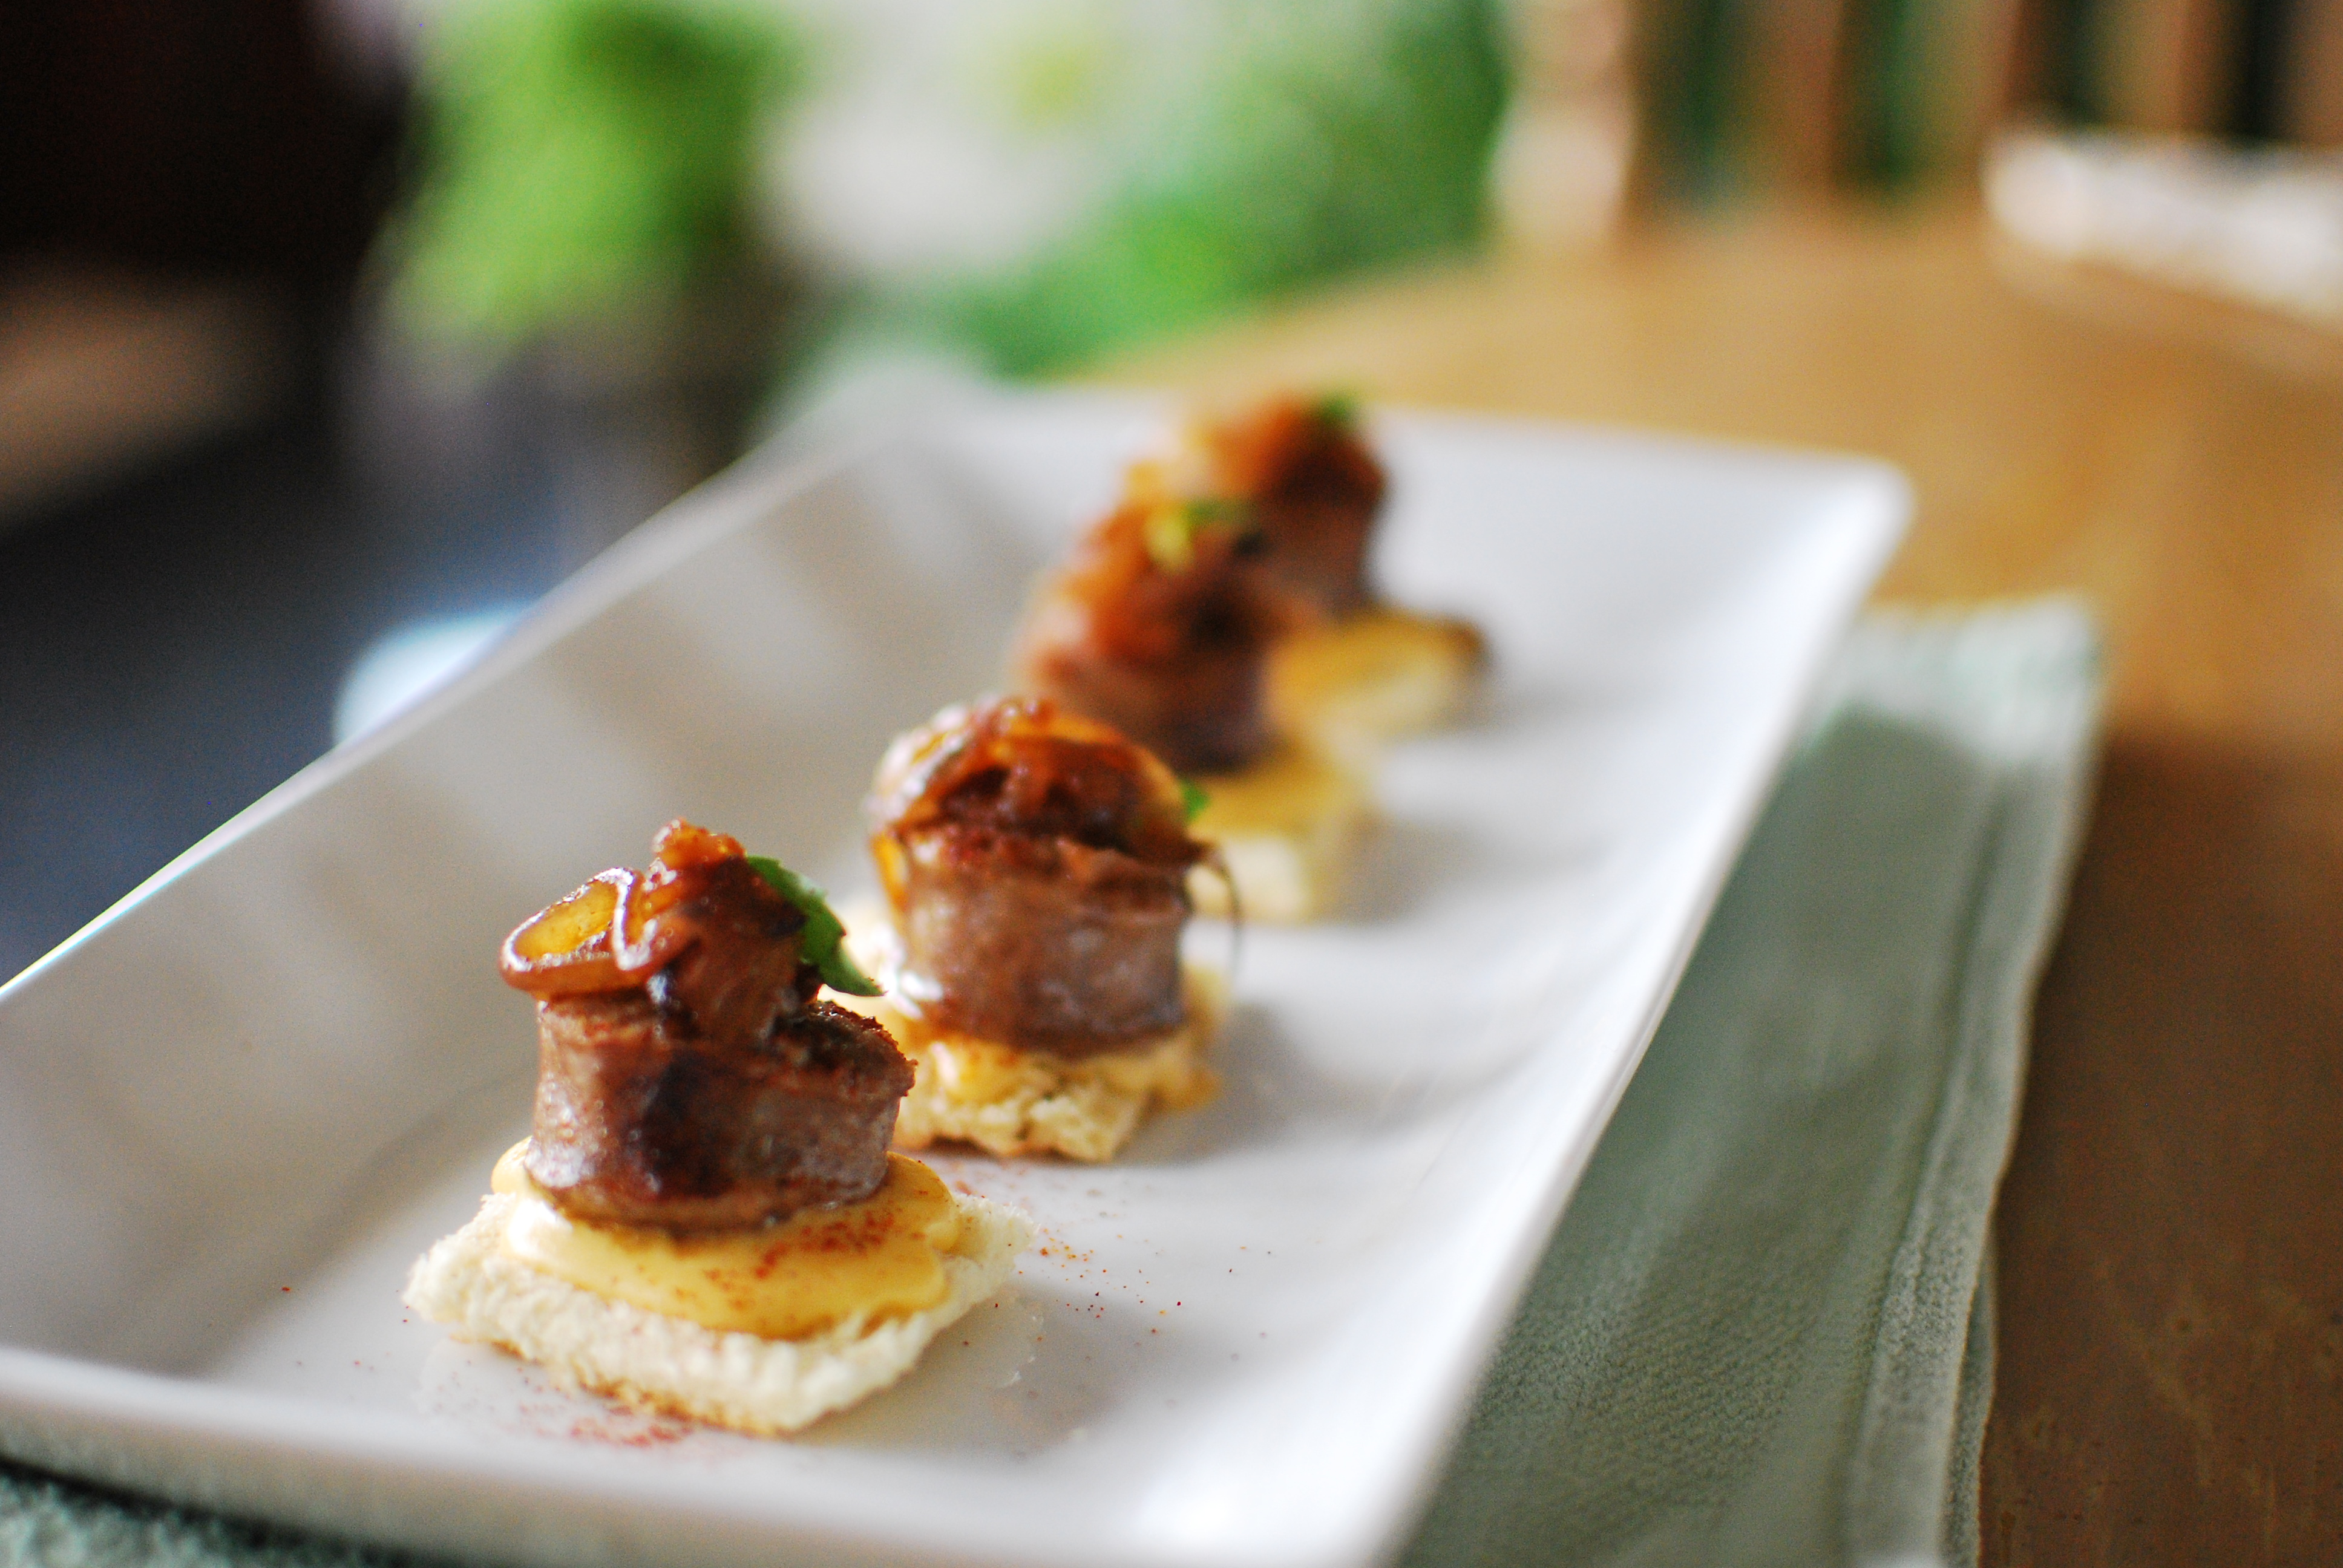 Grilled Bratwurst Appetizer with Dijon-Cheddar Fondue, Caramelized Onions, and Basil